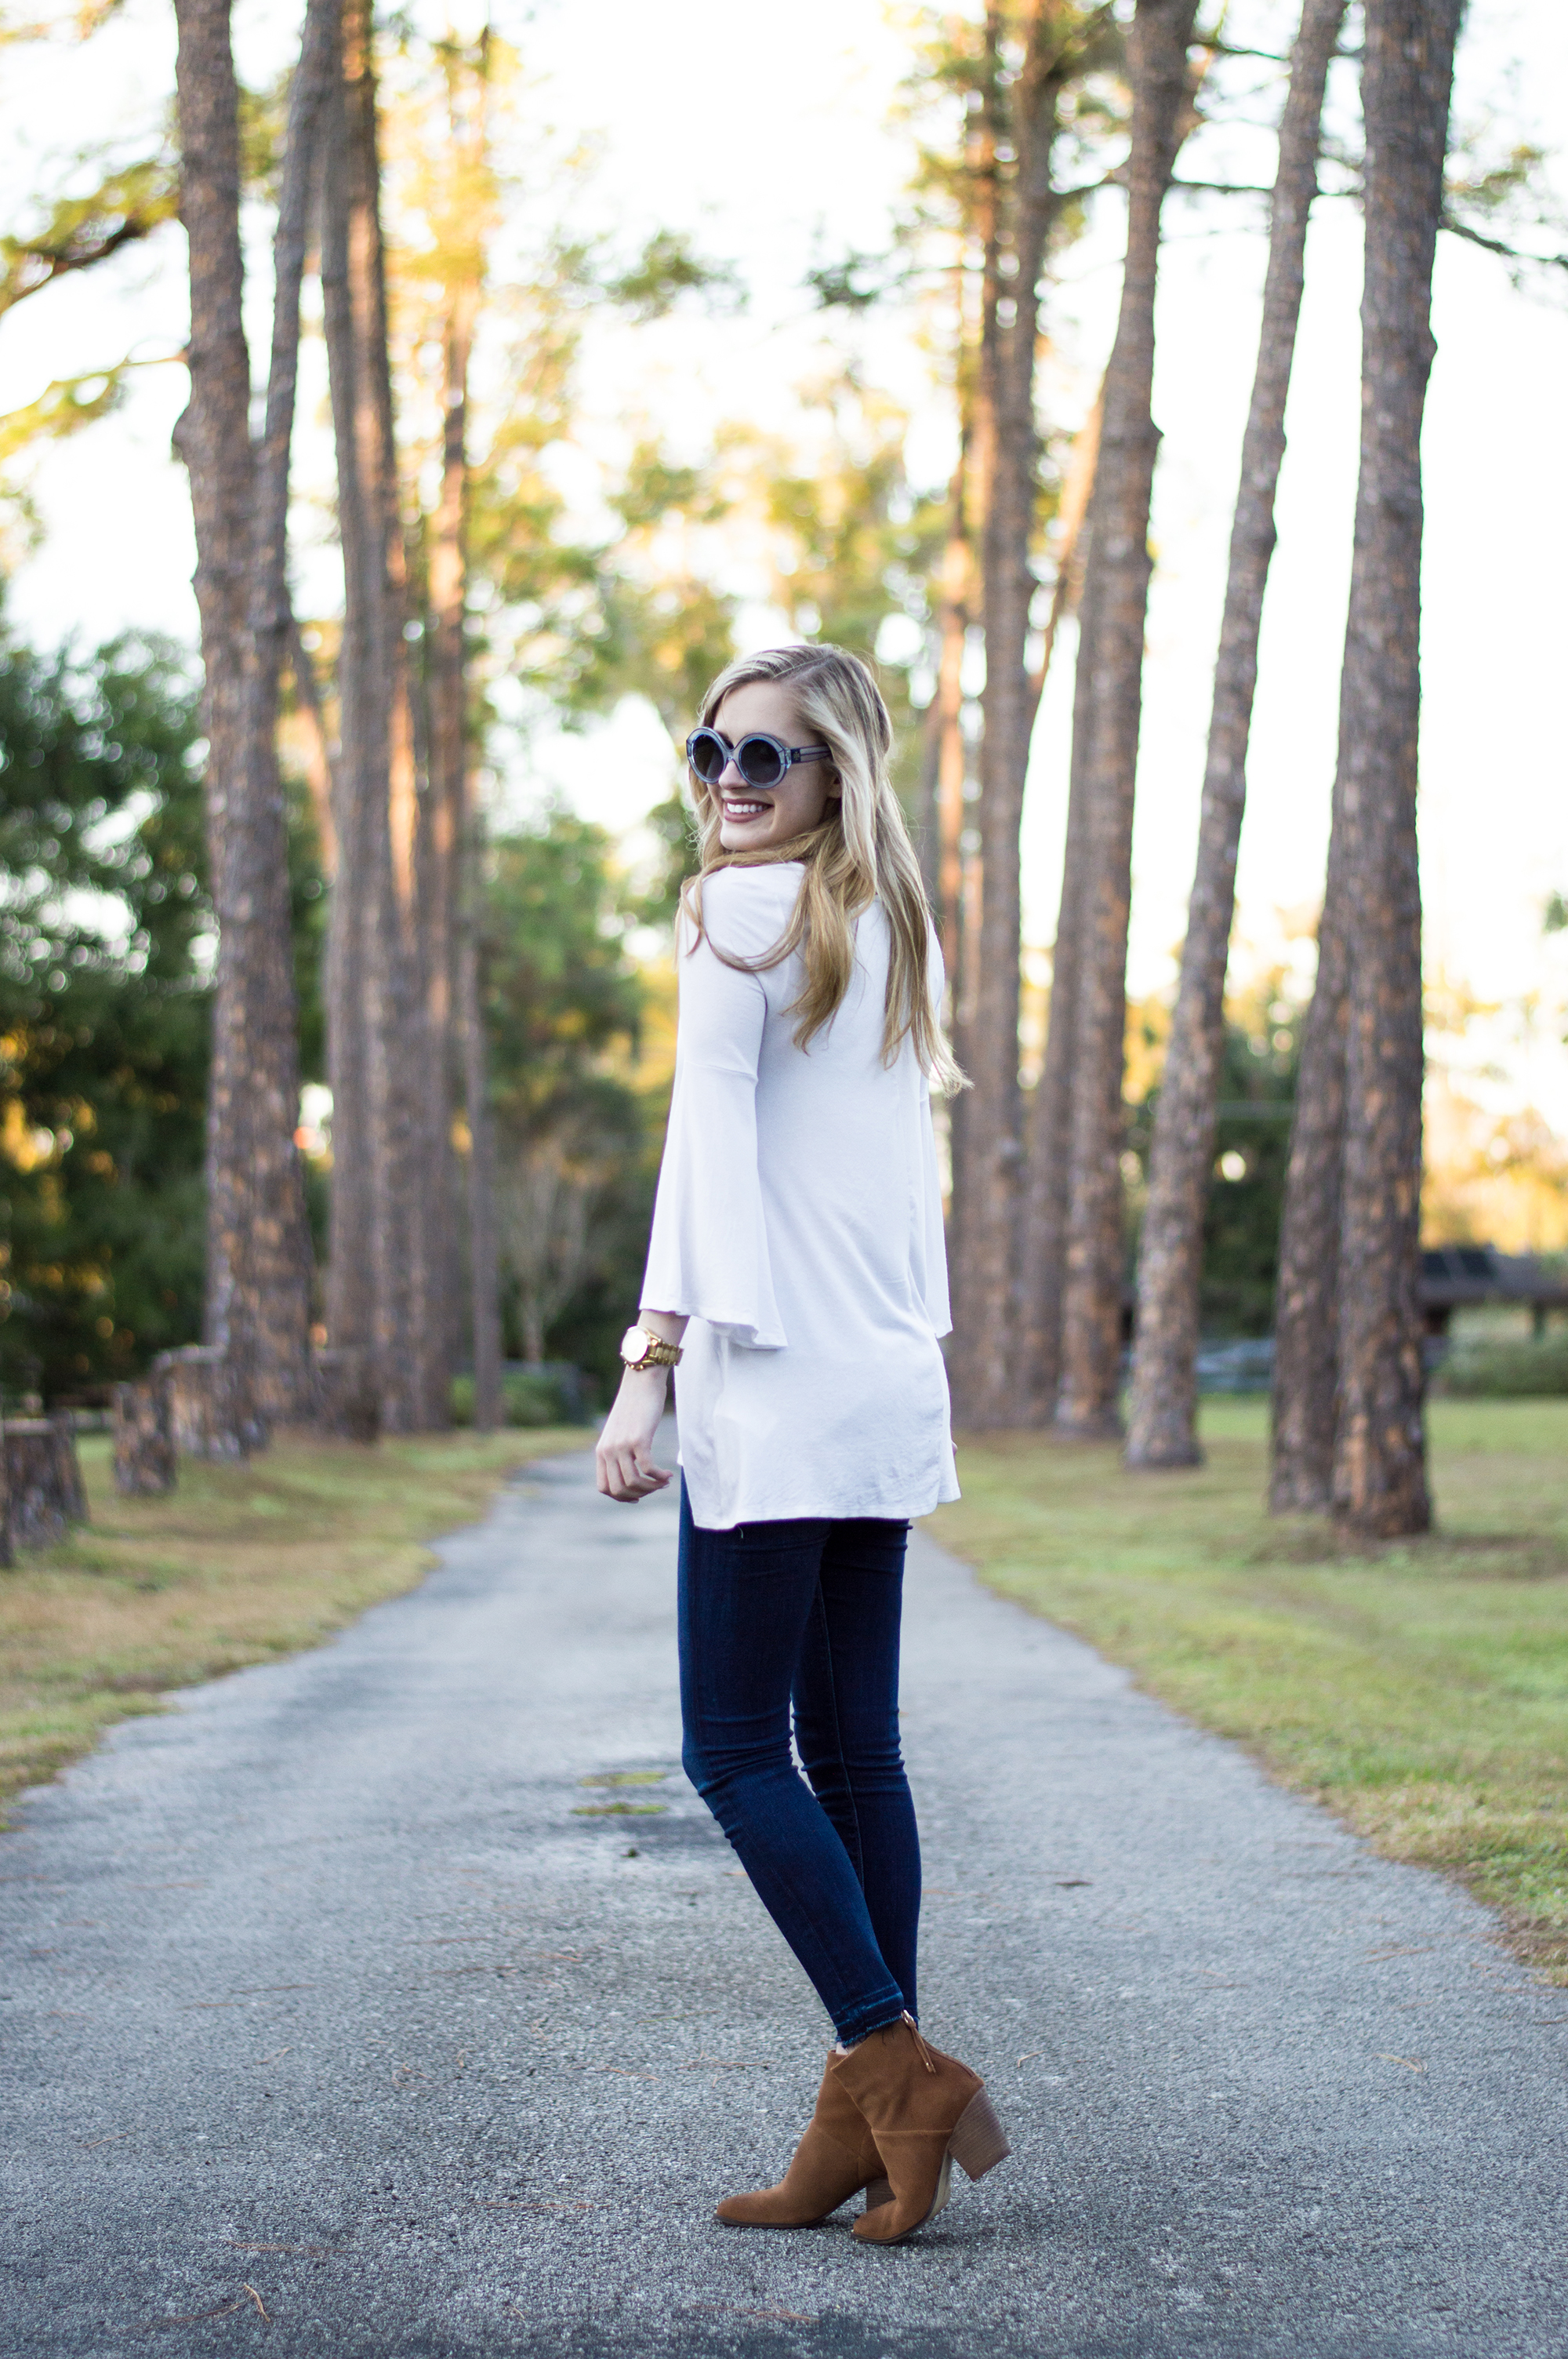 styelled-blog-elle-elisabeth-florida-blogger-fashion-style-ootd-urban-outfitters-chinese-laundry-skinny-jeans-hudson-denim-tory-burch-lace-up-fblogger-23